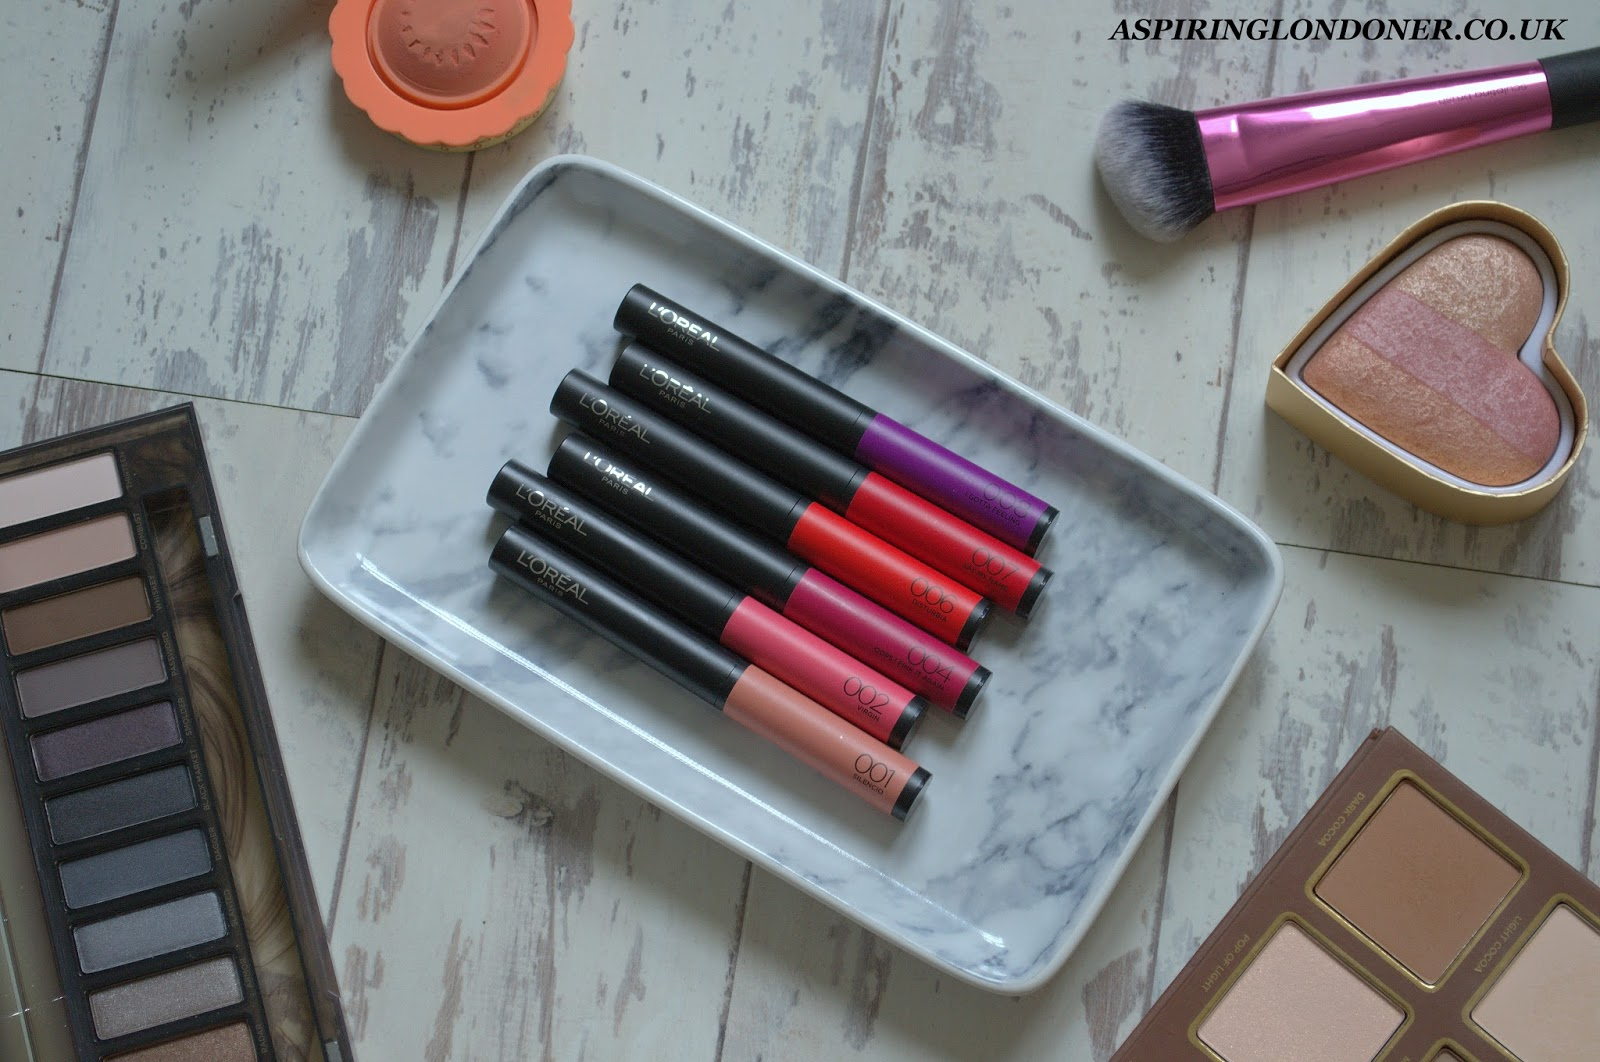 L'Oreal Infallible Matte Max Lip Colour Review+Swatch - Aspiring Londoner